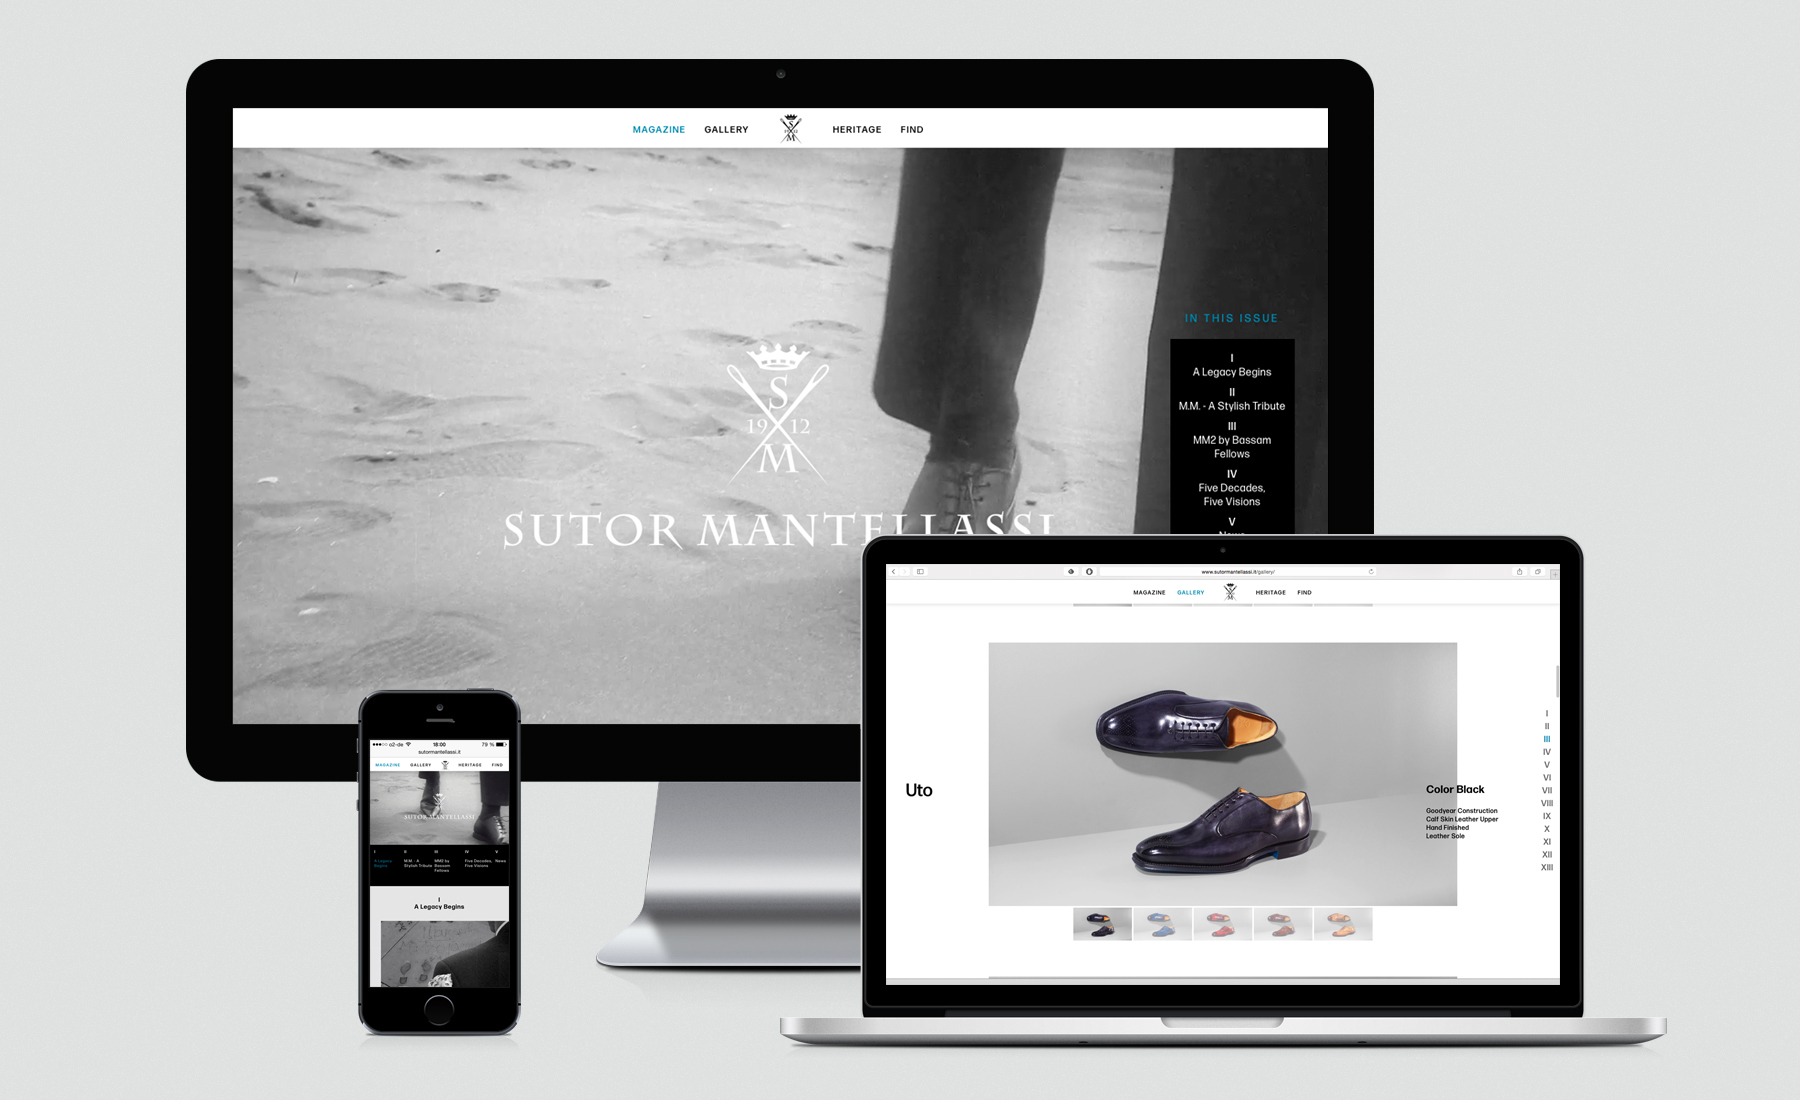 Sutor Mantellassi's responsive online presence at launch 2015